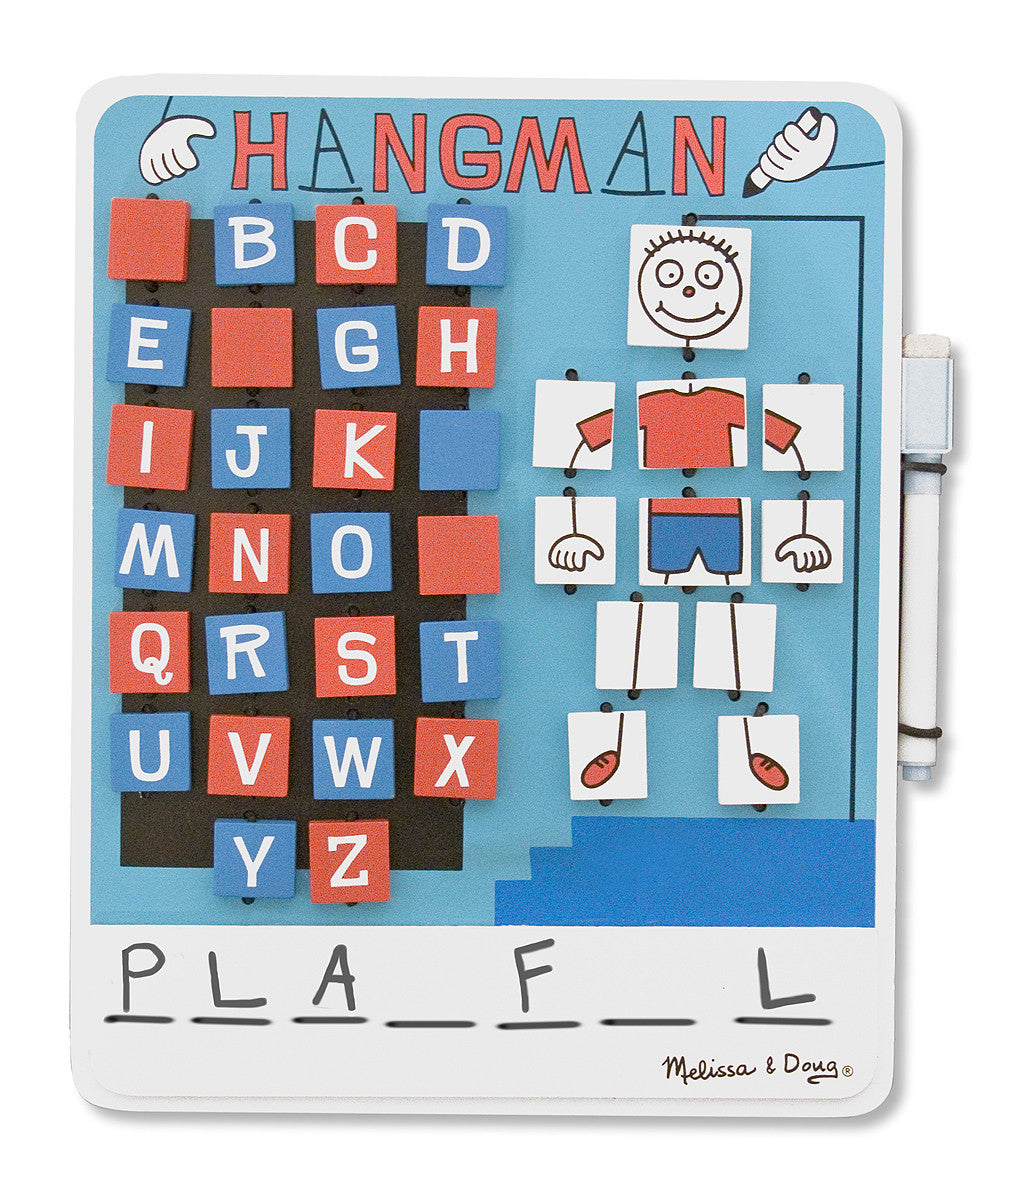 Melissa & Doug Flip to Win Hangman 2095